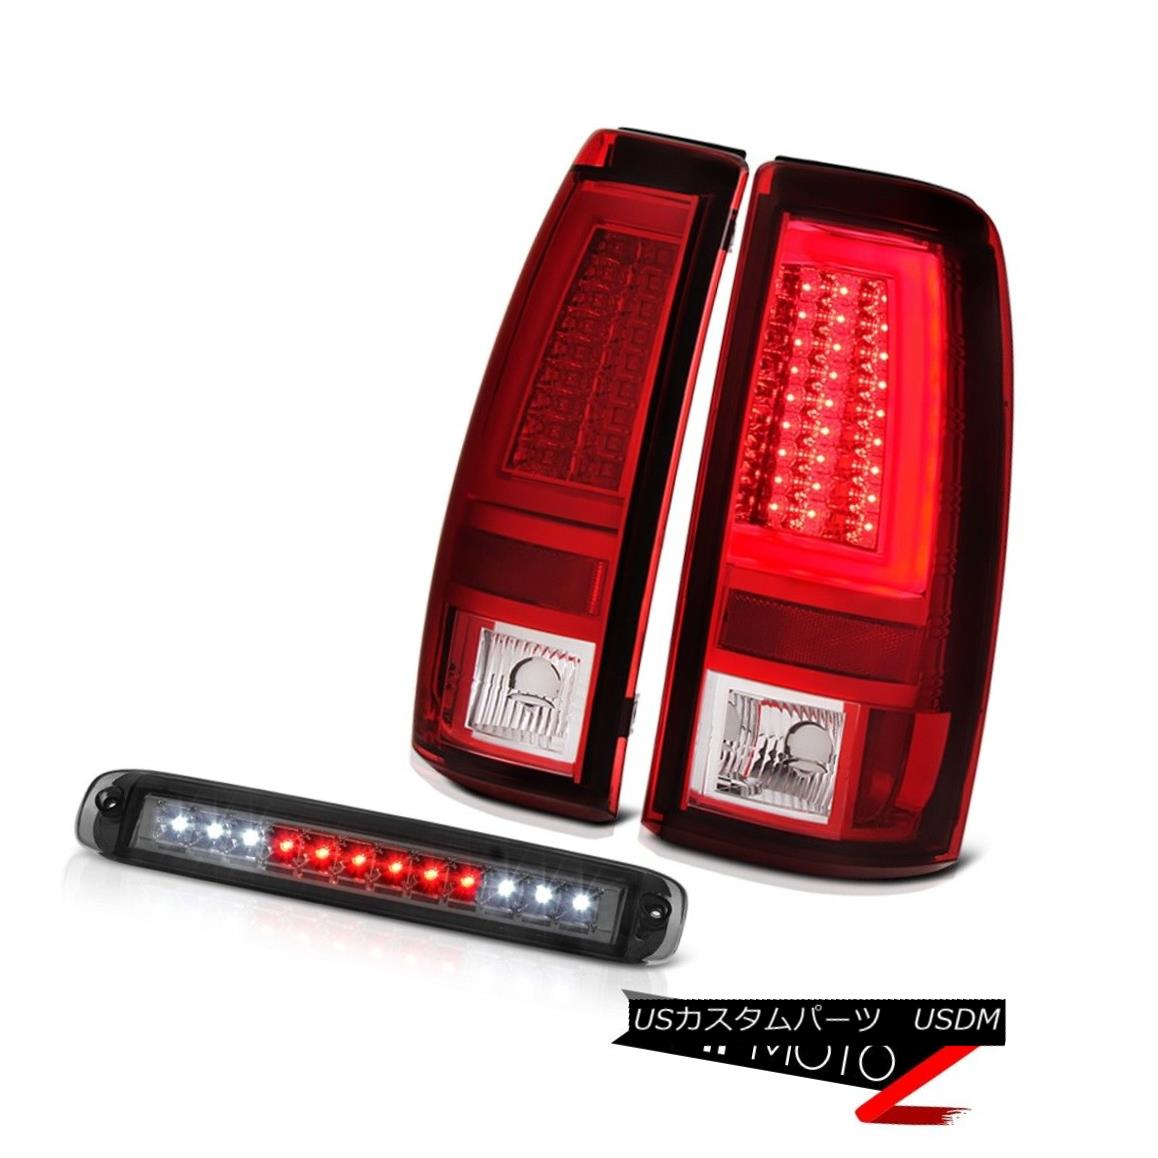 テールライト 2003-2006 Chevy Silverado Bloody Red Tail Brake Lamps Third Light